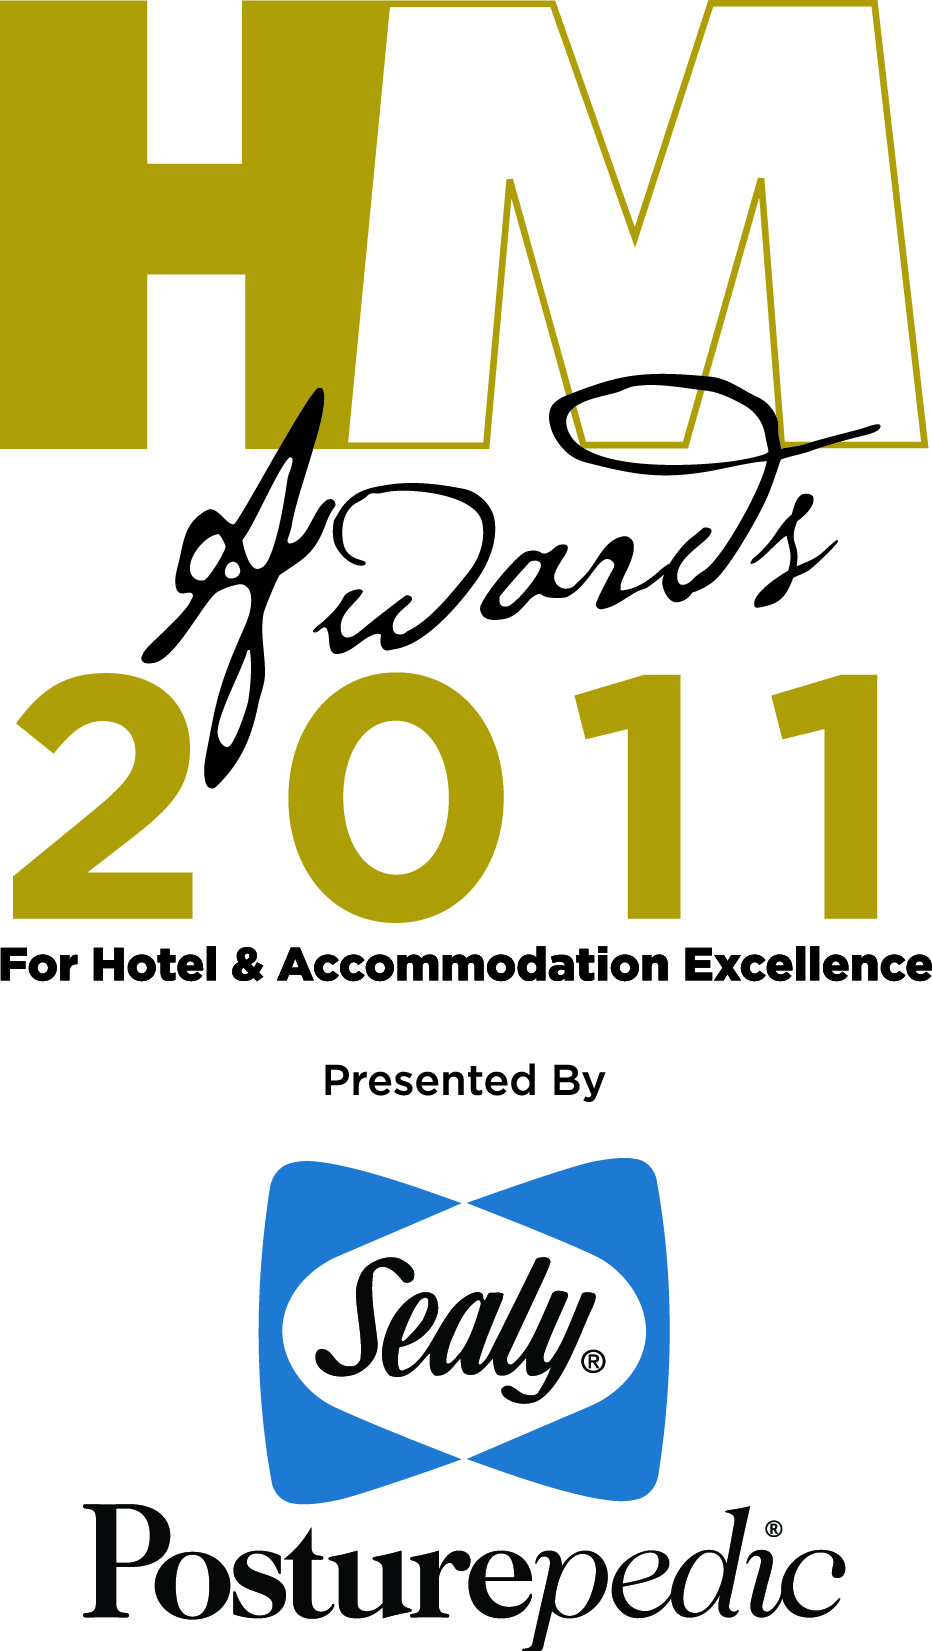 2011 hm awards finalists announced